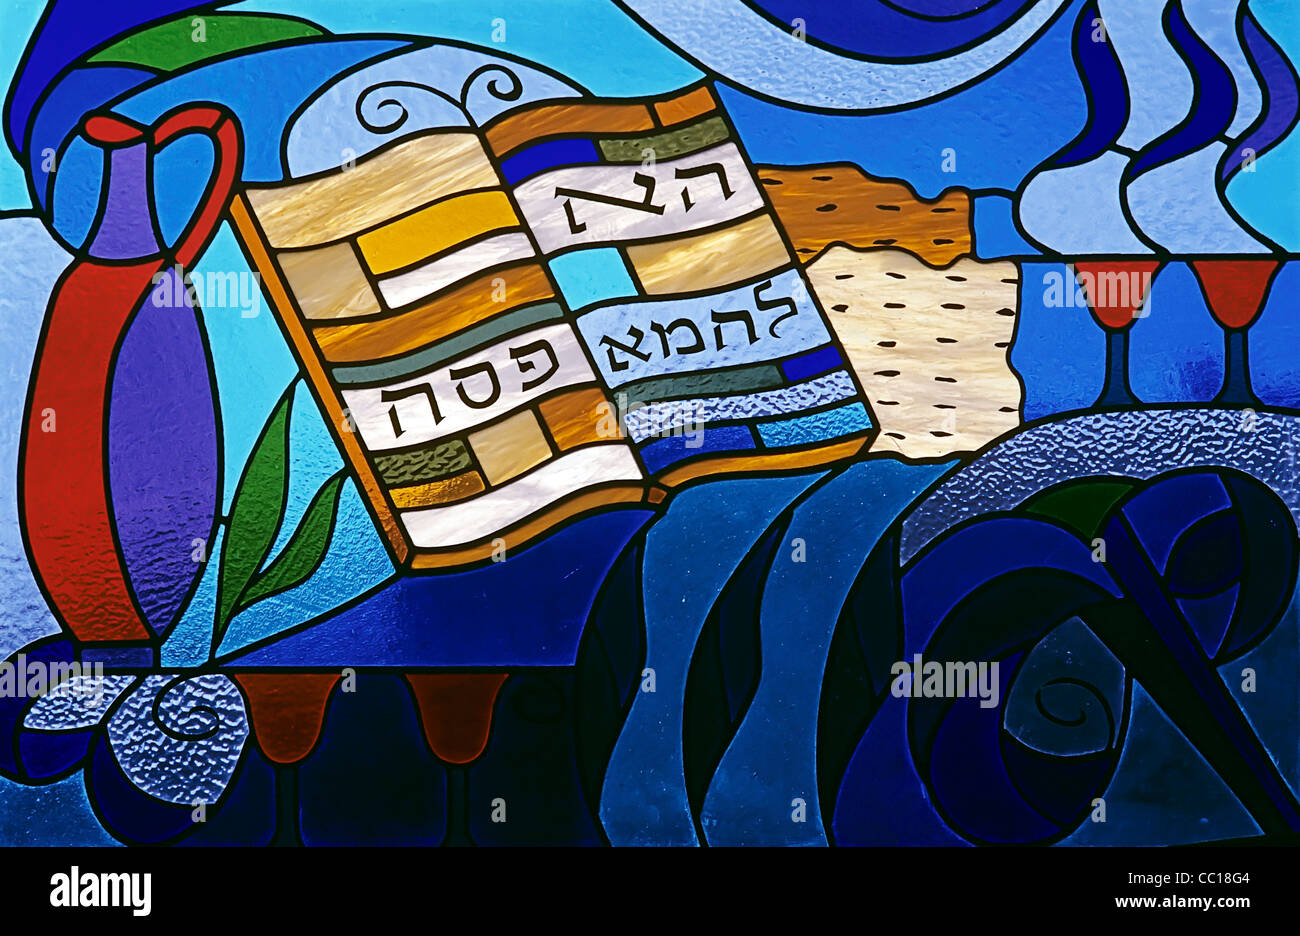 open Passover Haggadah and wine cups - objects related to Passover - stained glasses - London synagogue - UK - Stock Image